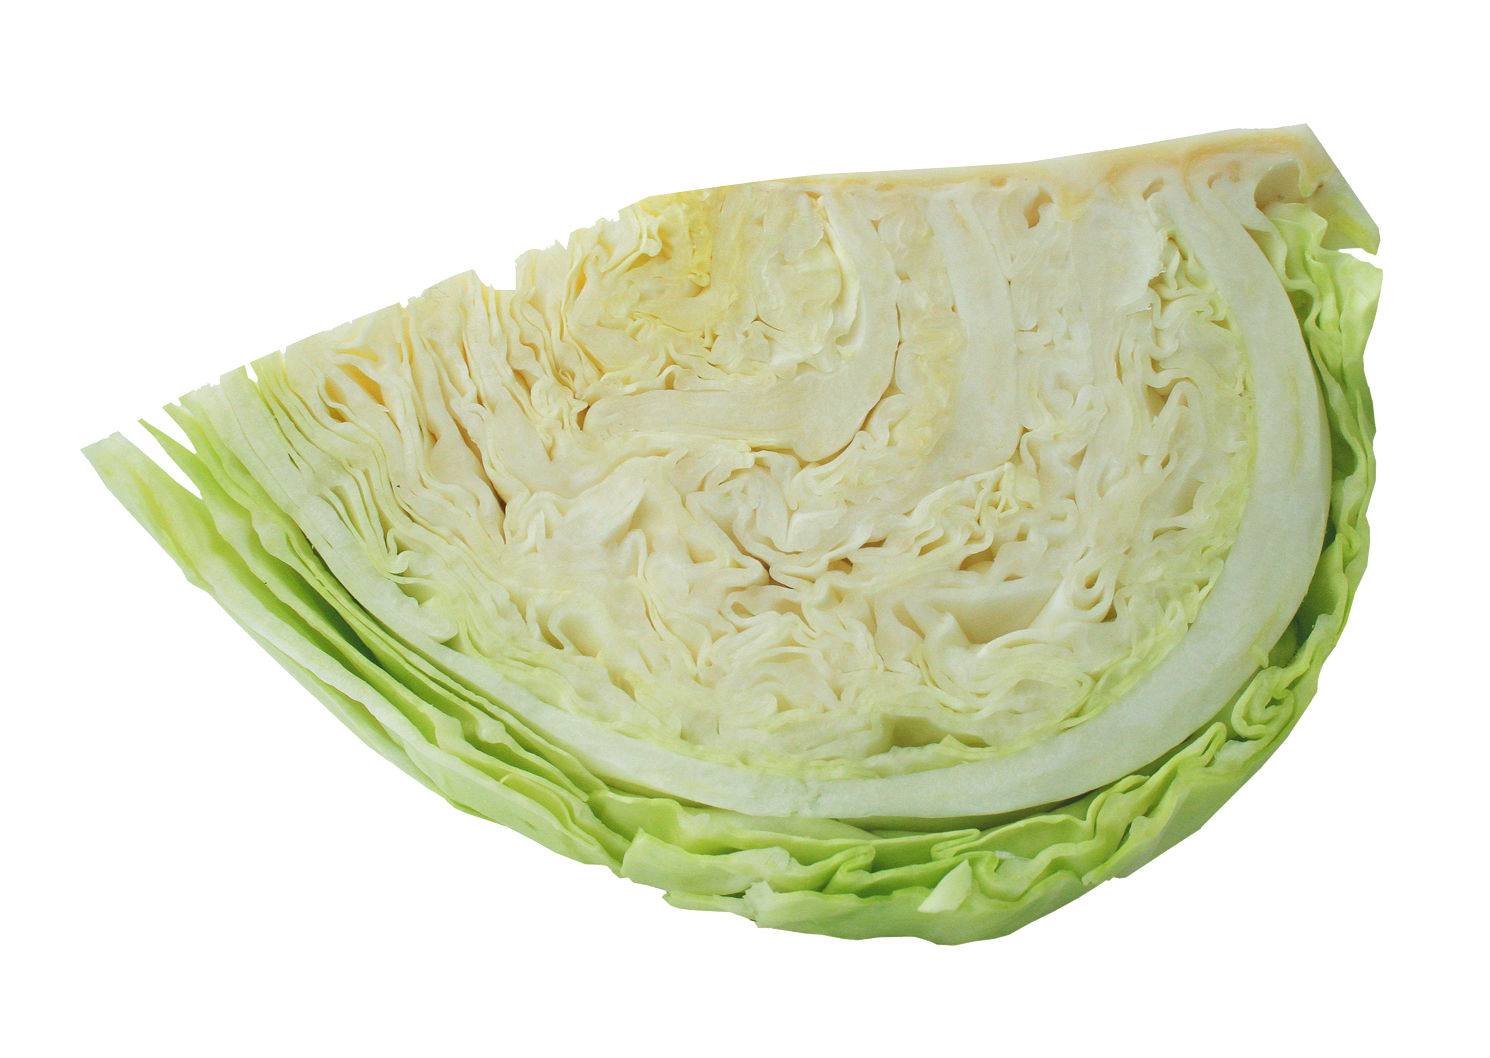 Half Cabbage PNG Image